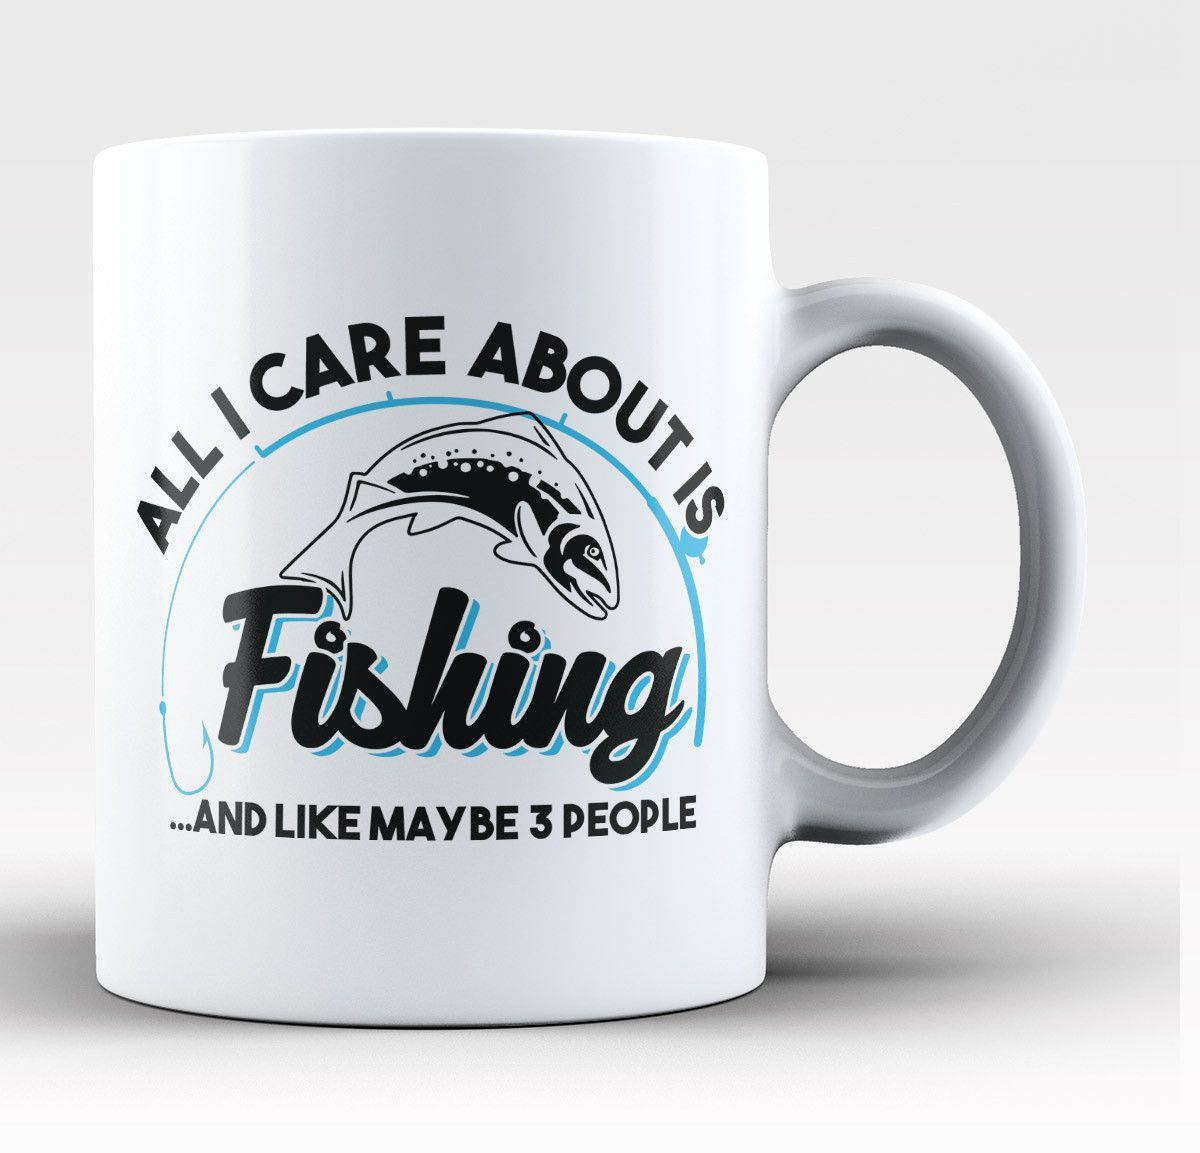 All I care about is Fishing ...And like maybe 3 people The perfect mug for any fishing fanatic. Order yours today! Take advantage of our Low Flat Rate Shipping - order 2 or more and save. - Printed an